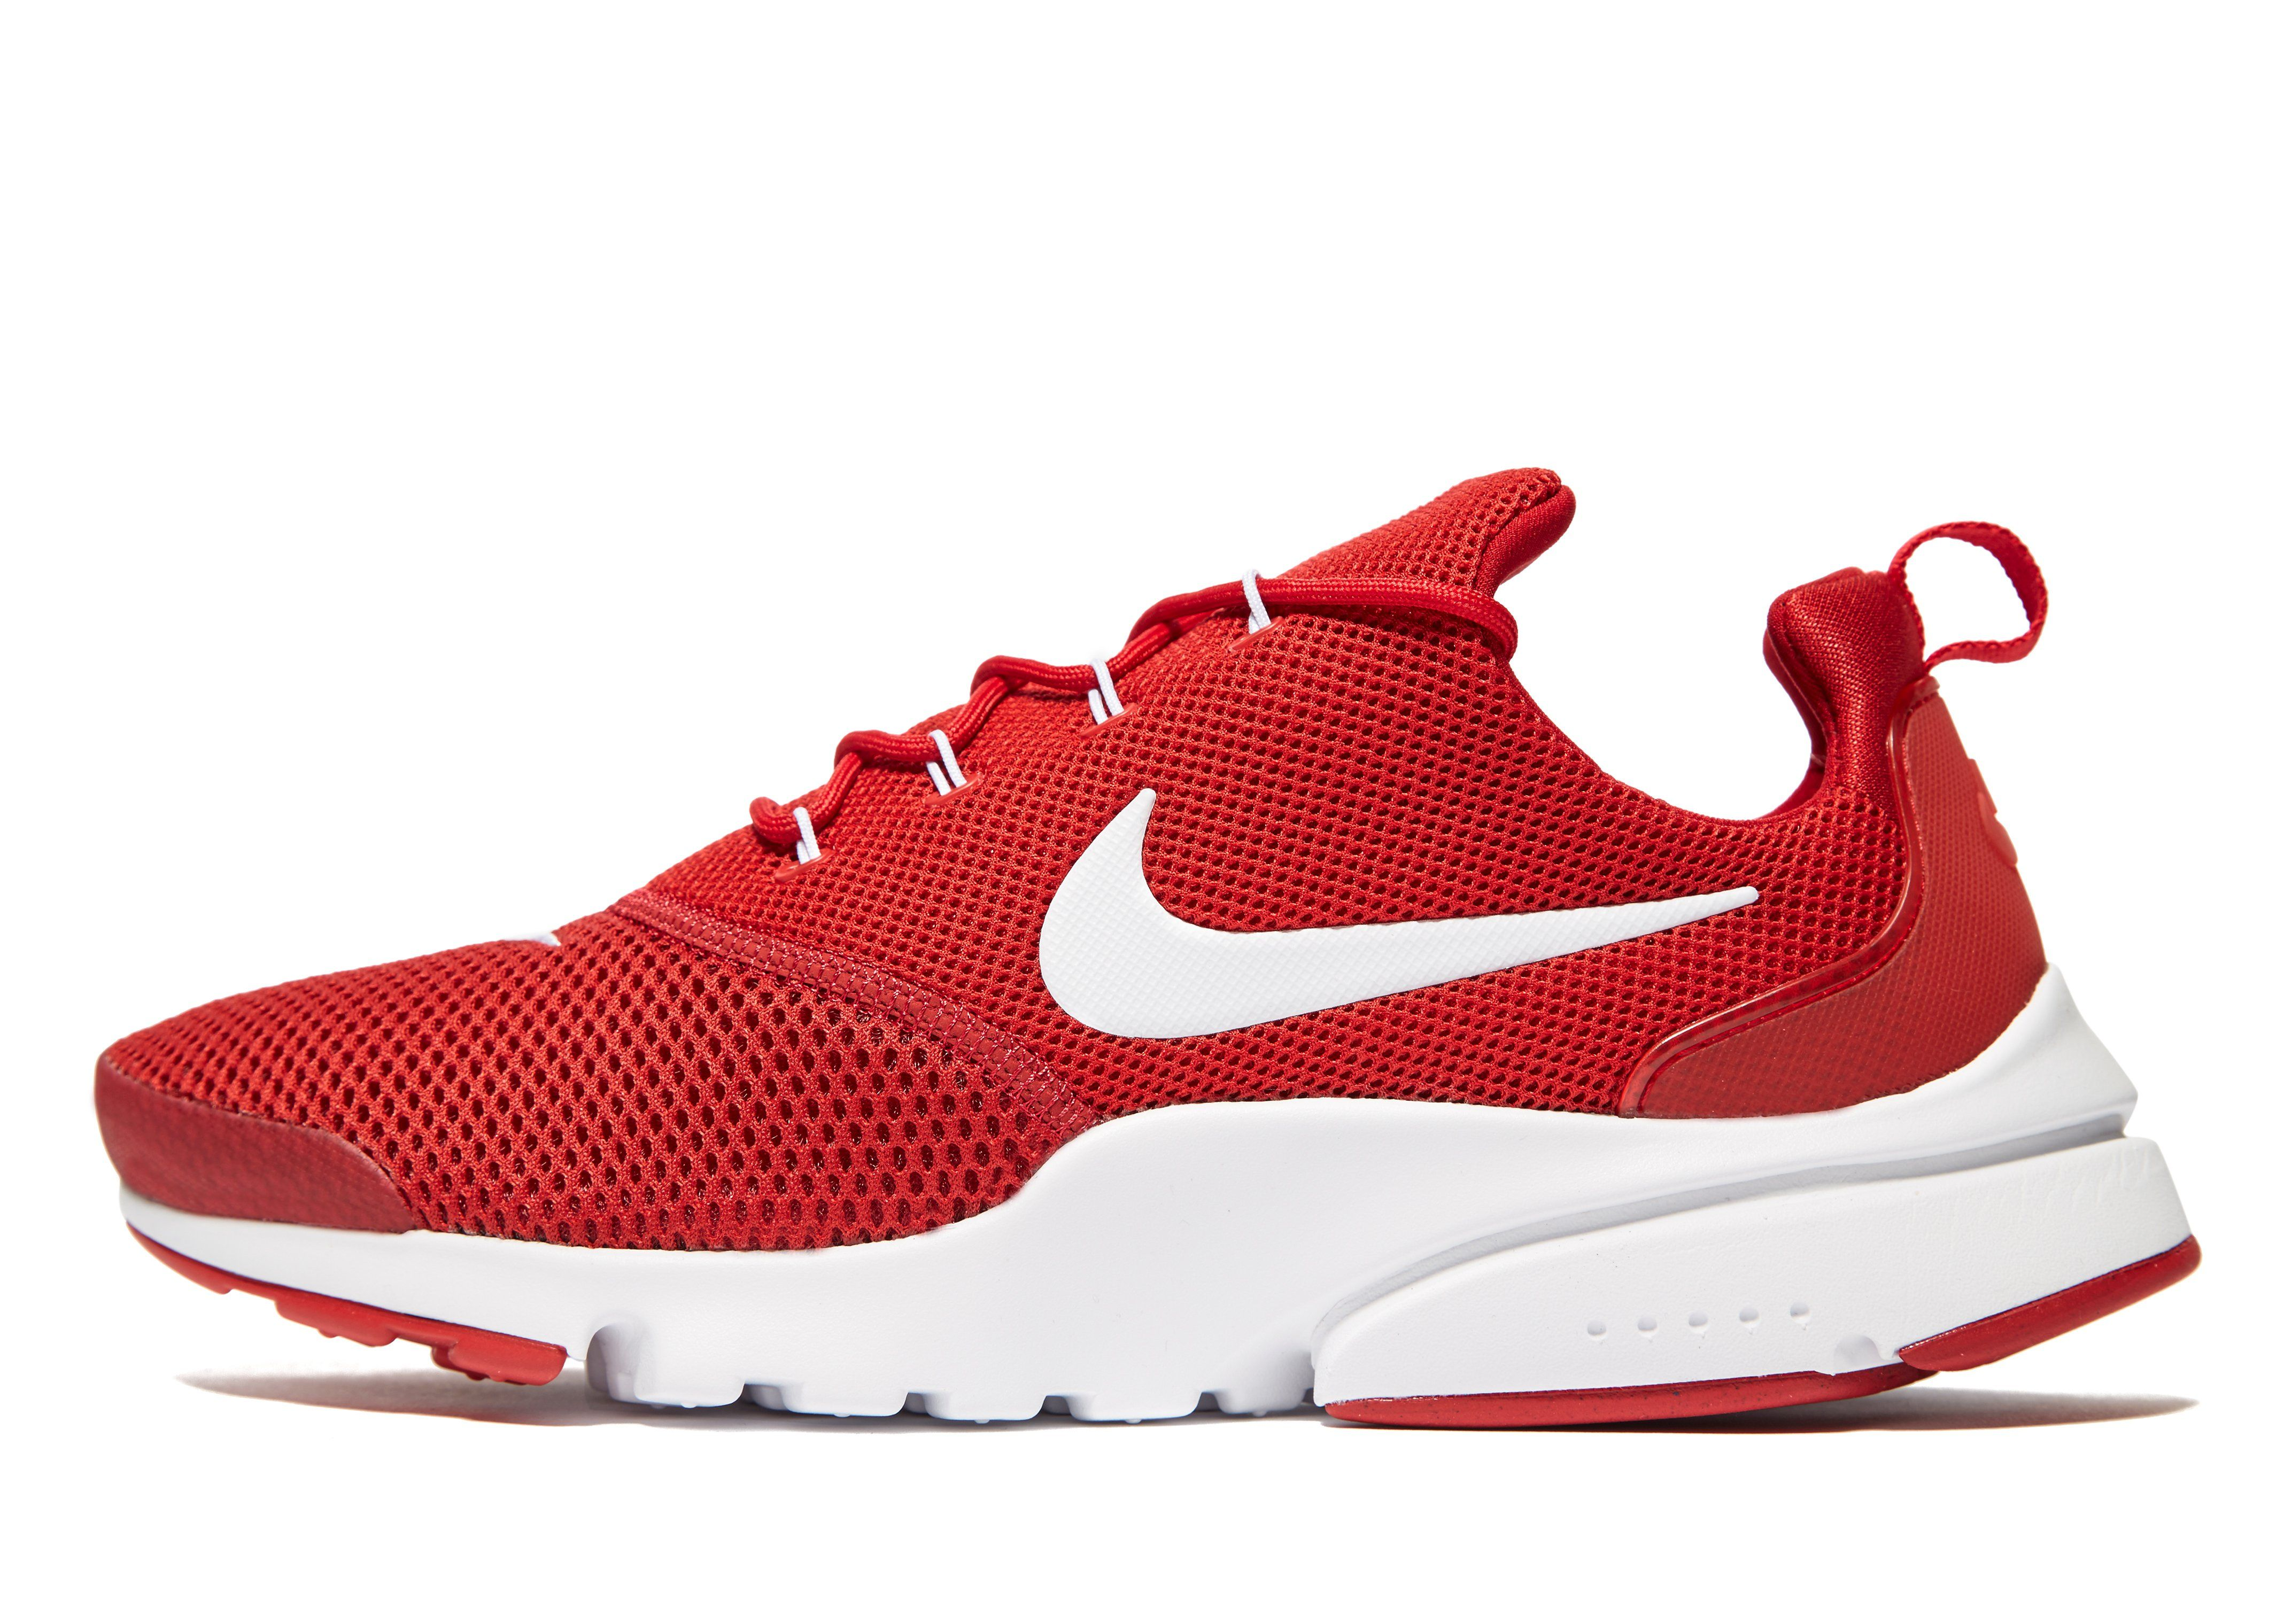 Red Nike Trainers   Nike × Men and Women s shoes 2018 ... 4a029ee5596d